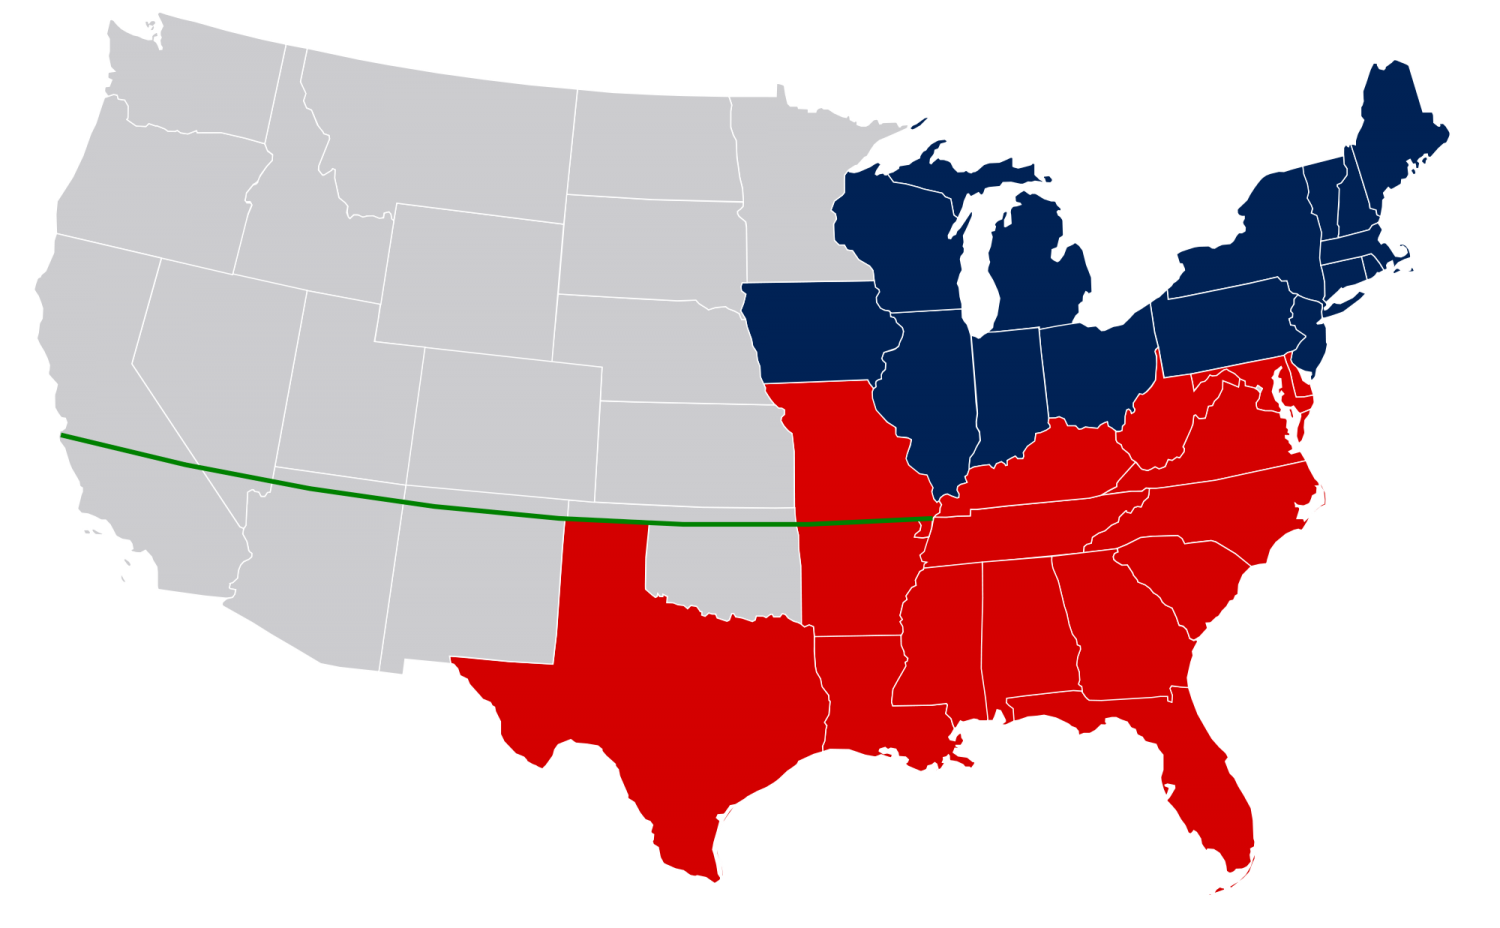 Missouri Compromise of